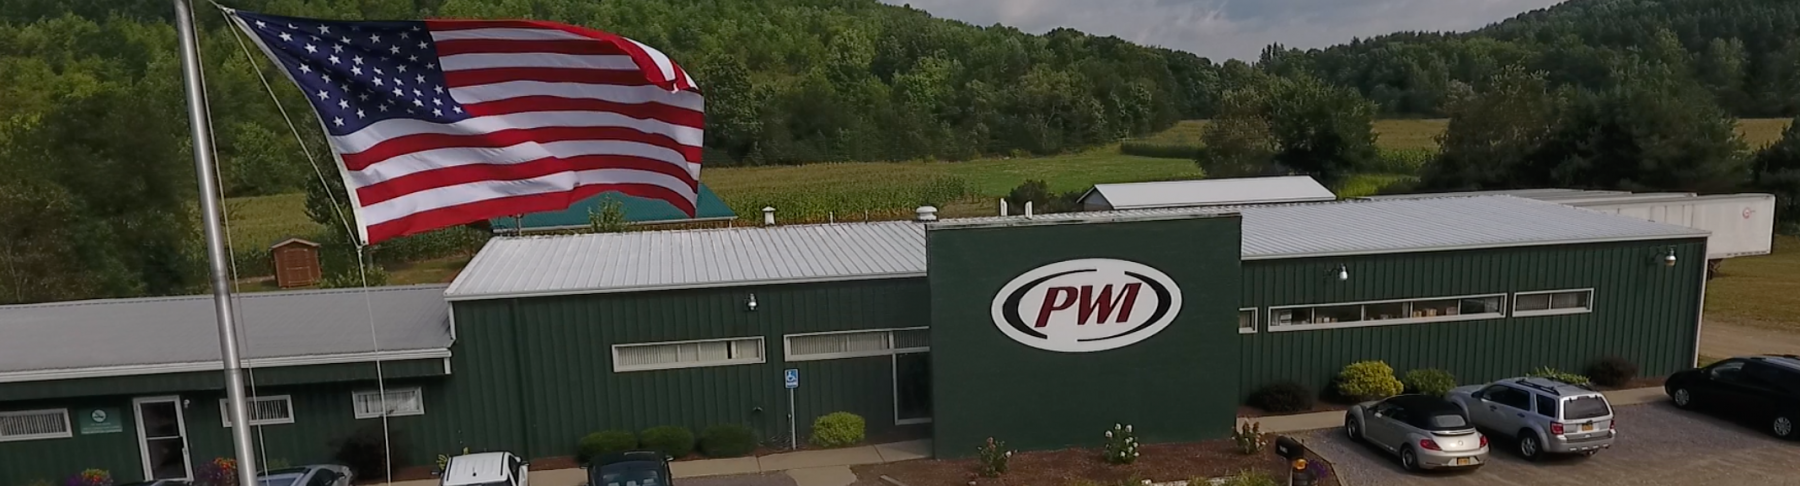 pwi-facility-with-american-flag